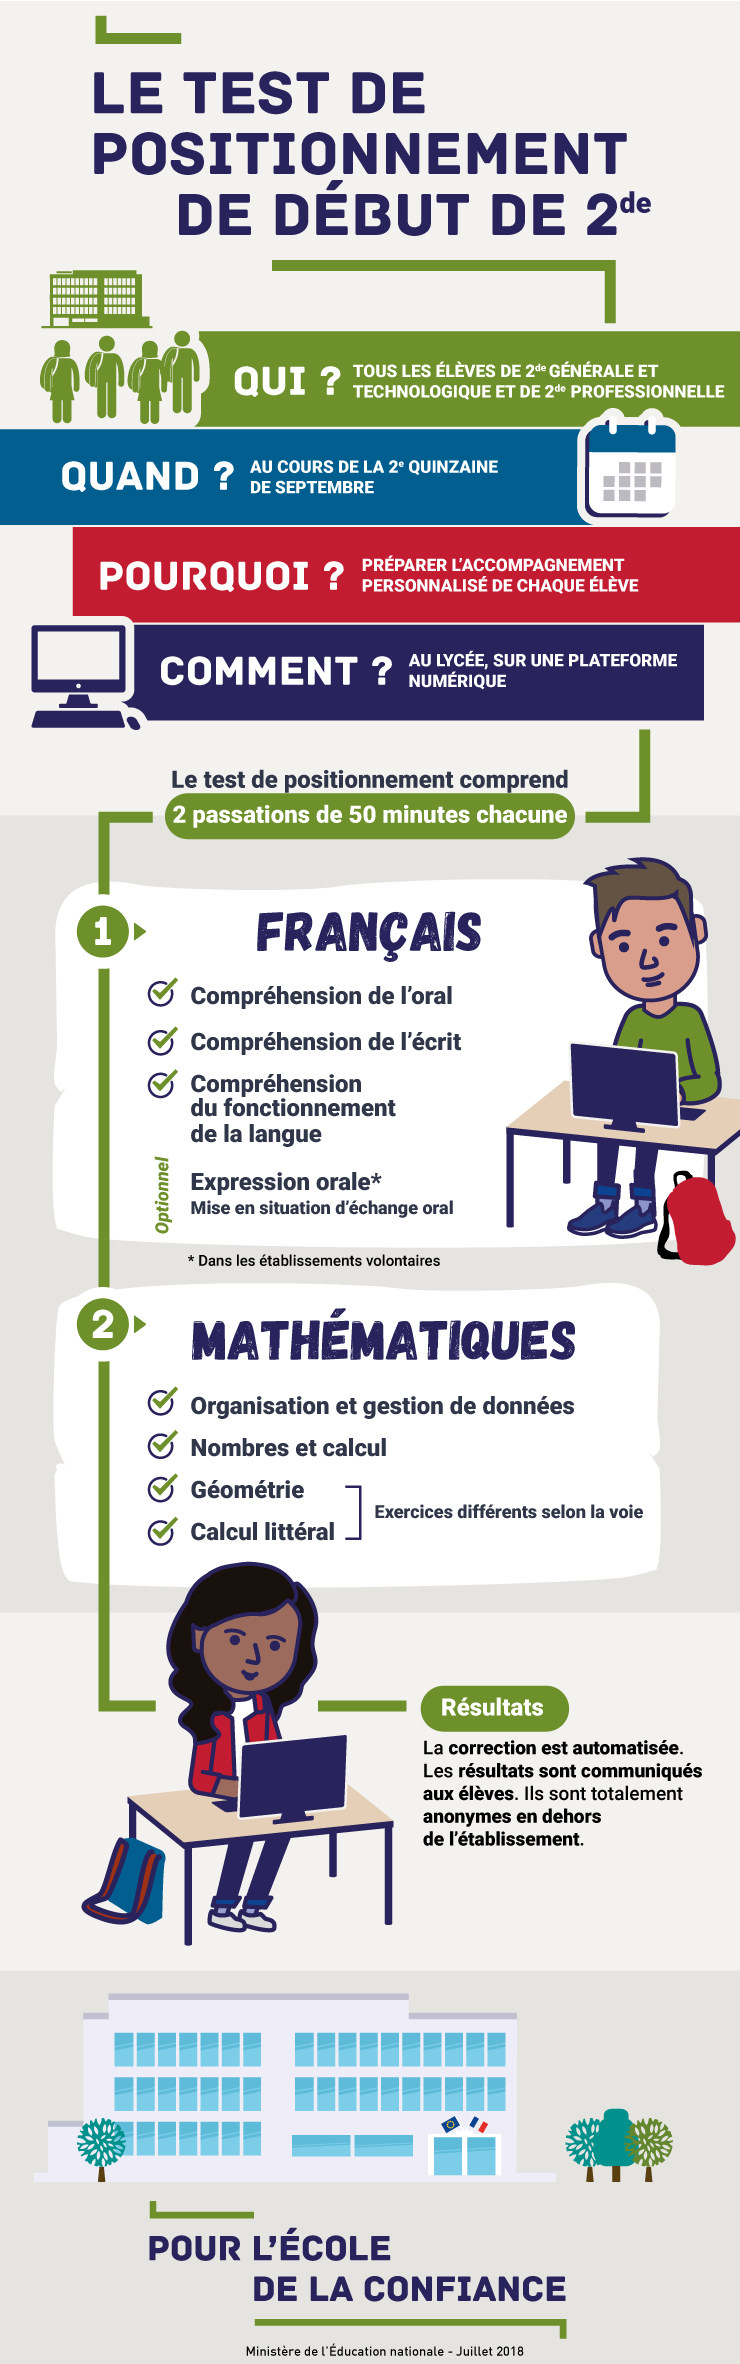 http://cache.media.education.gouv.fr/image/Lycee/12/1/2018_evaluation_2nd_infog_984121.jpg